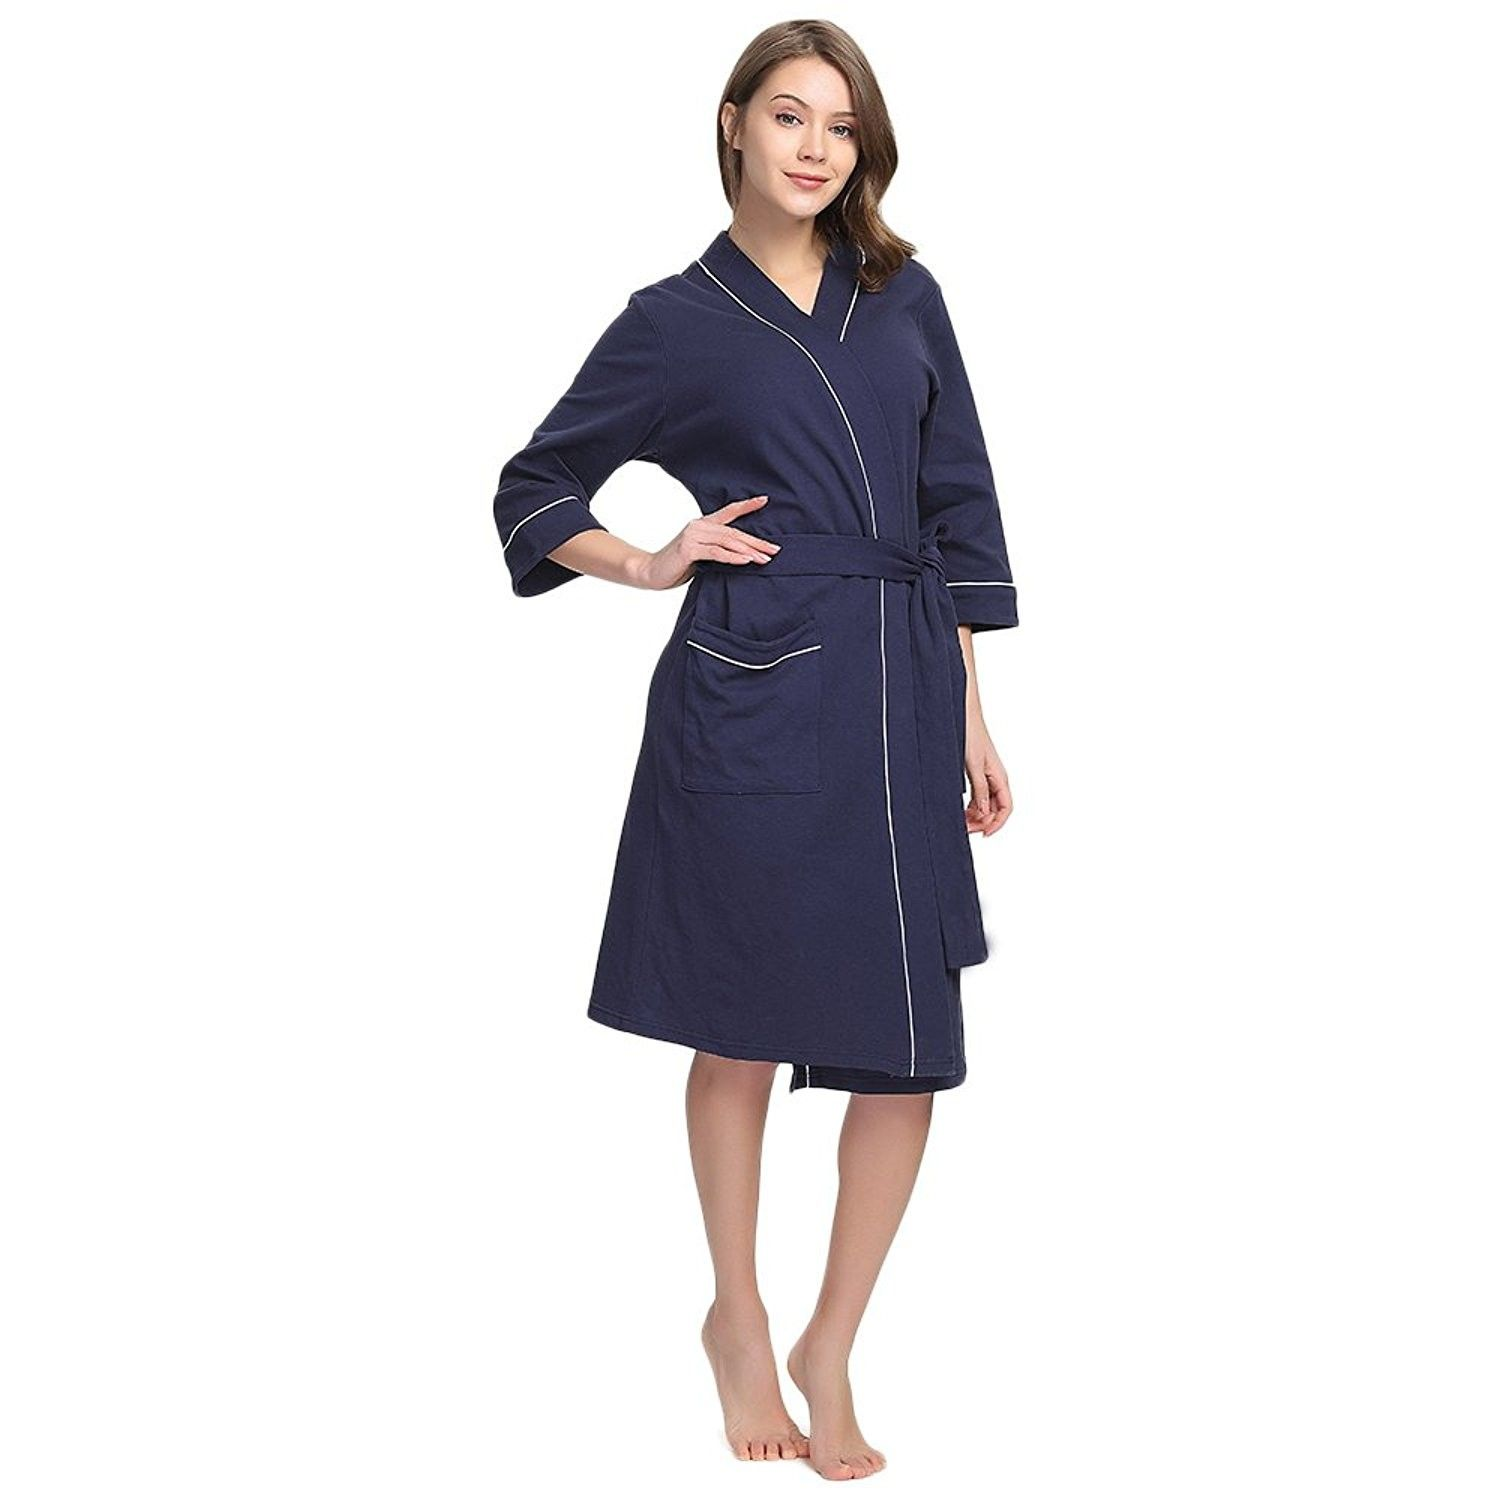 58814fa3e962 Womens Cotton Robe Soft Kimono Spa Knit Bathrobe Lightweight Long ...